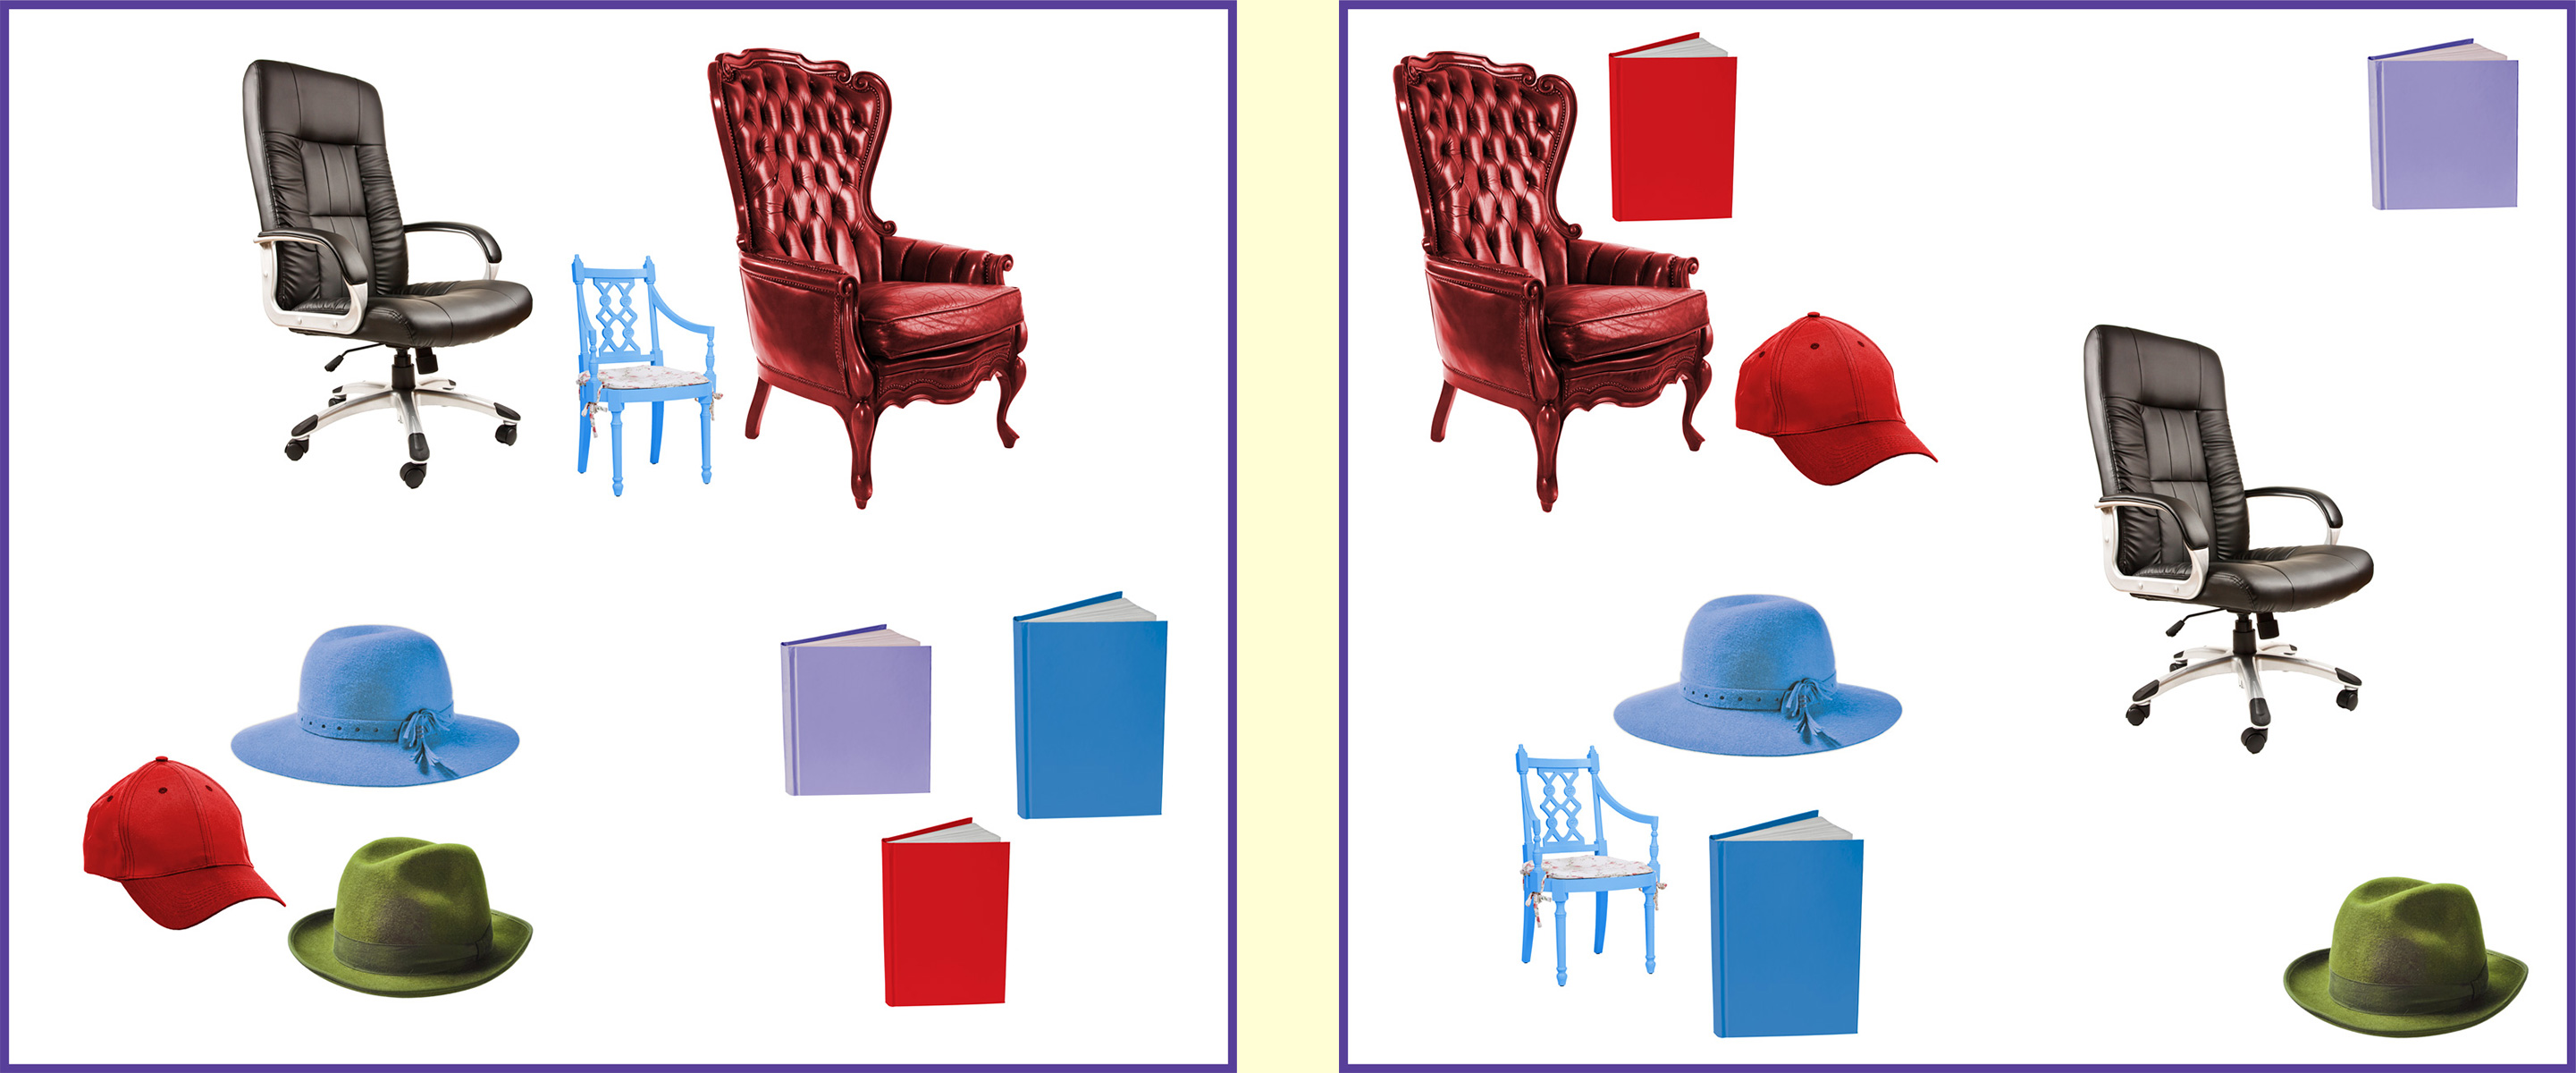 Three different chairs, three different books, and three different hats.